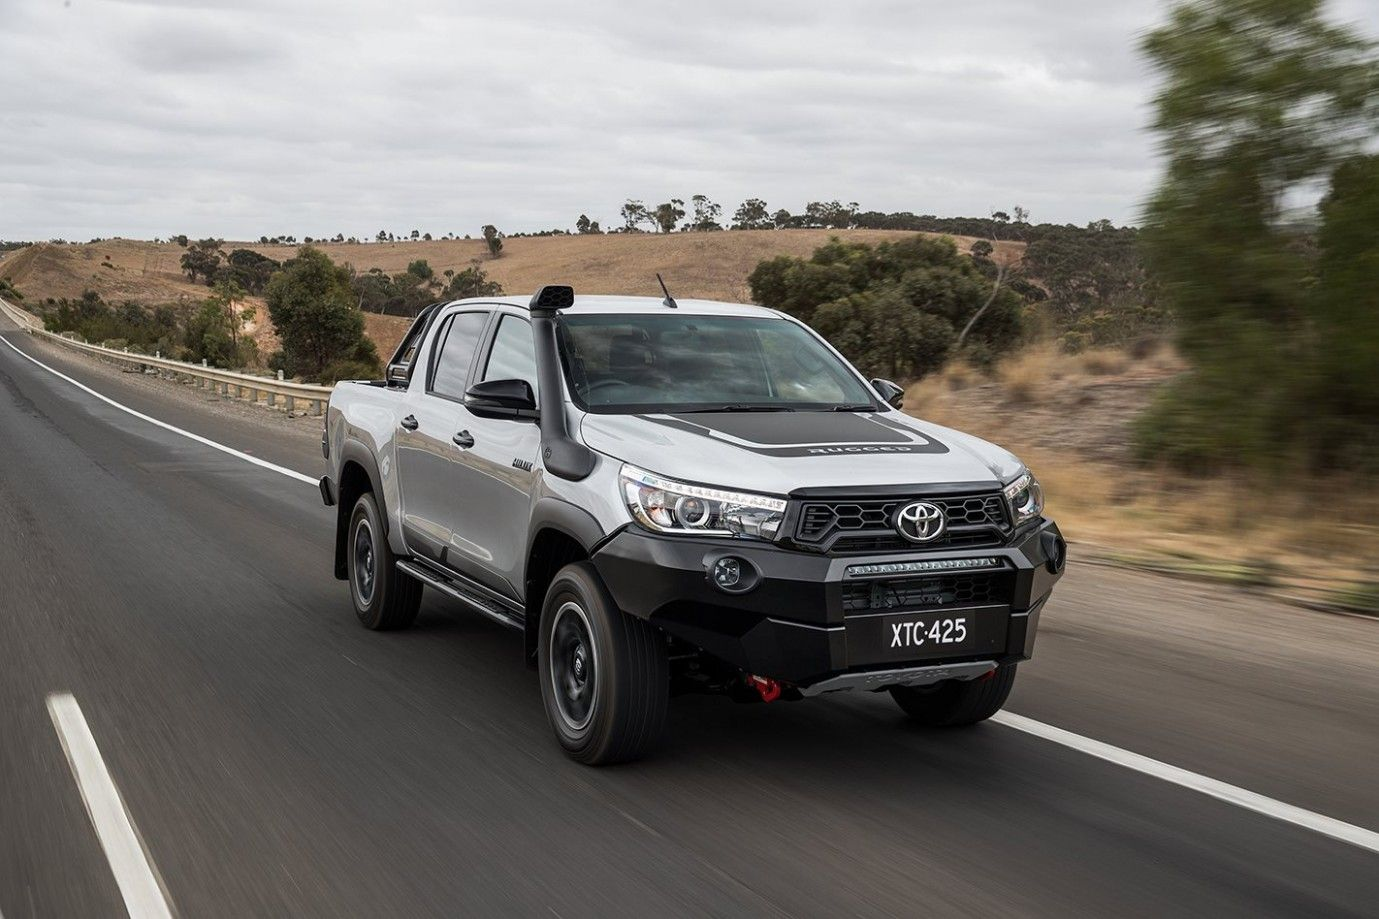 Toyota Hilux 2020 Price Overview in 2020 Toyota hilux